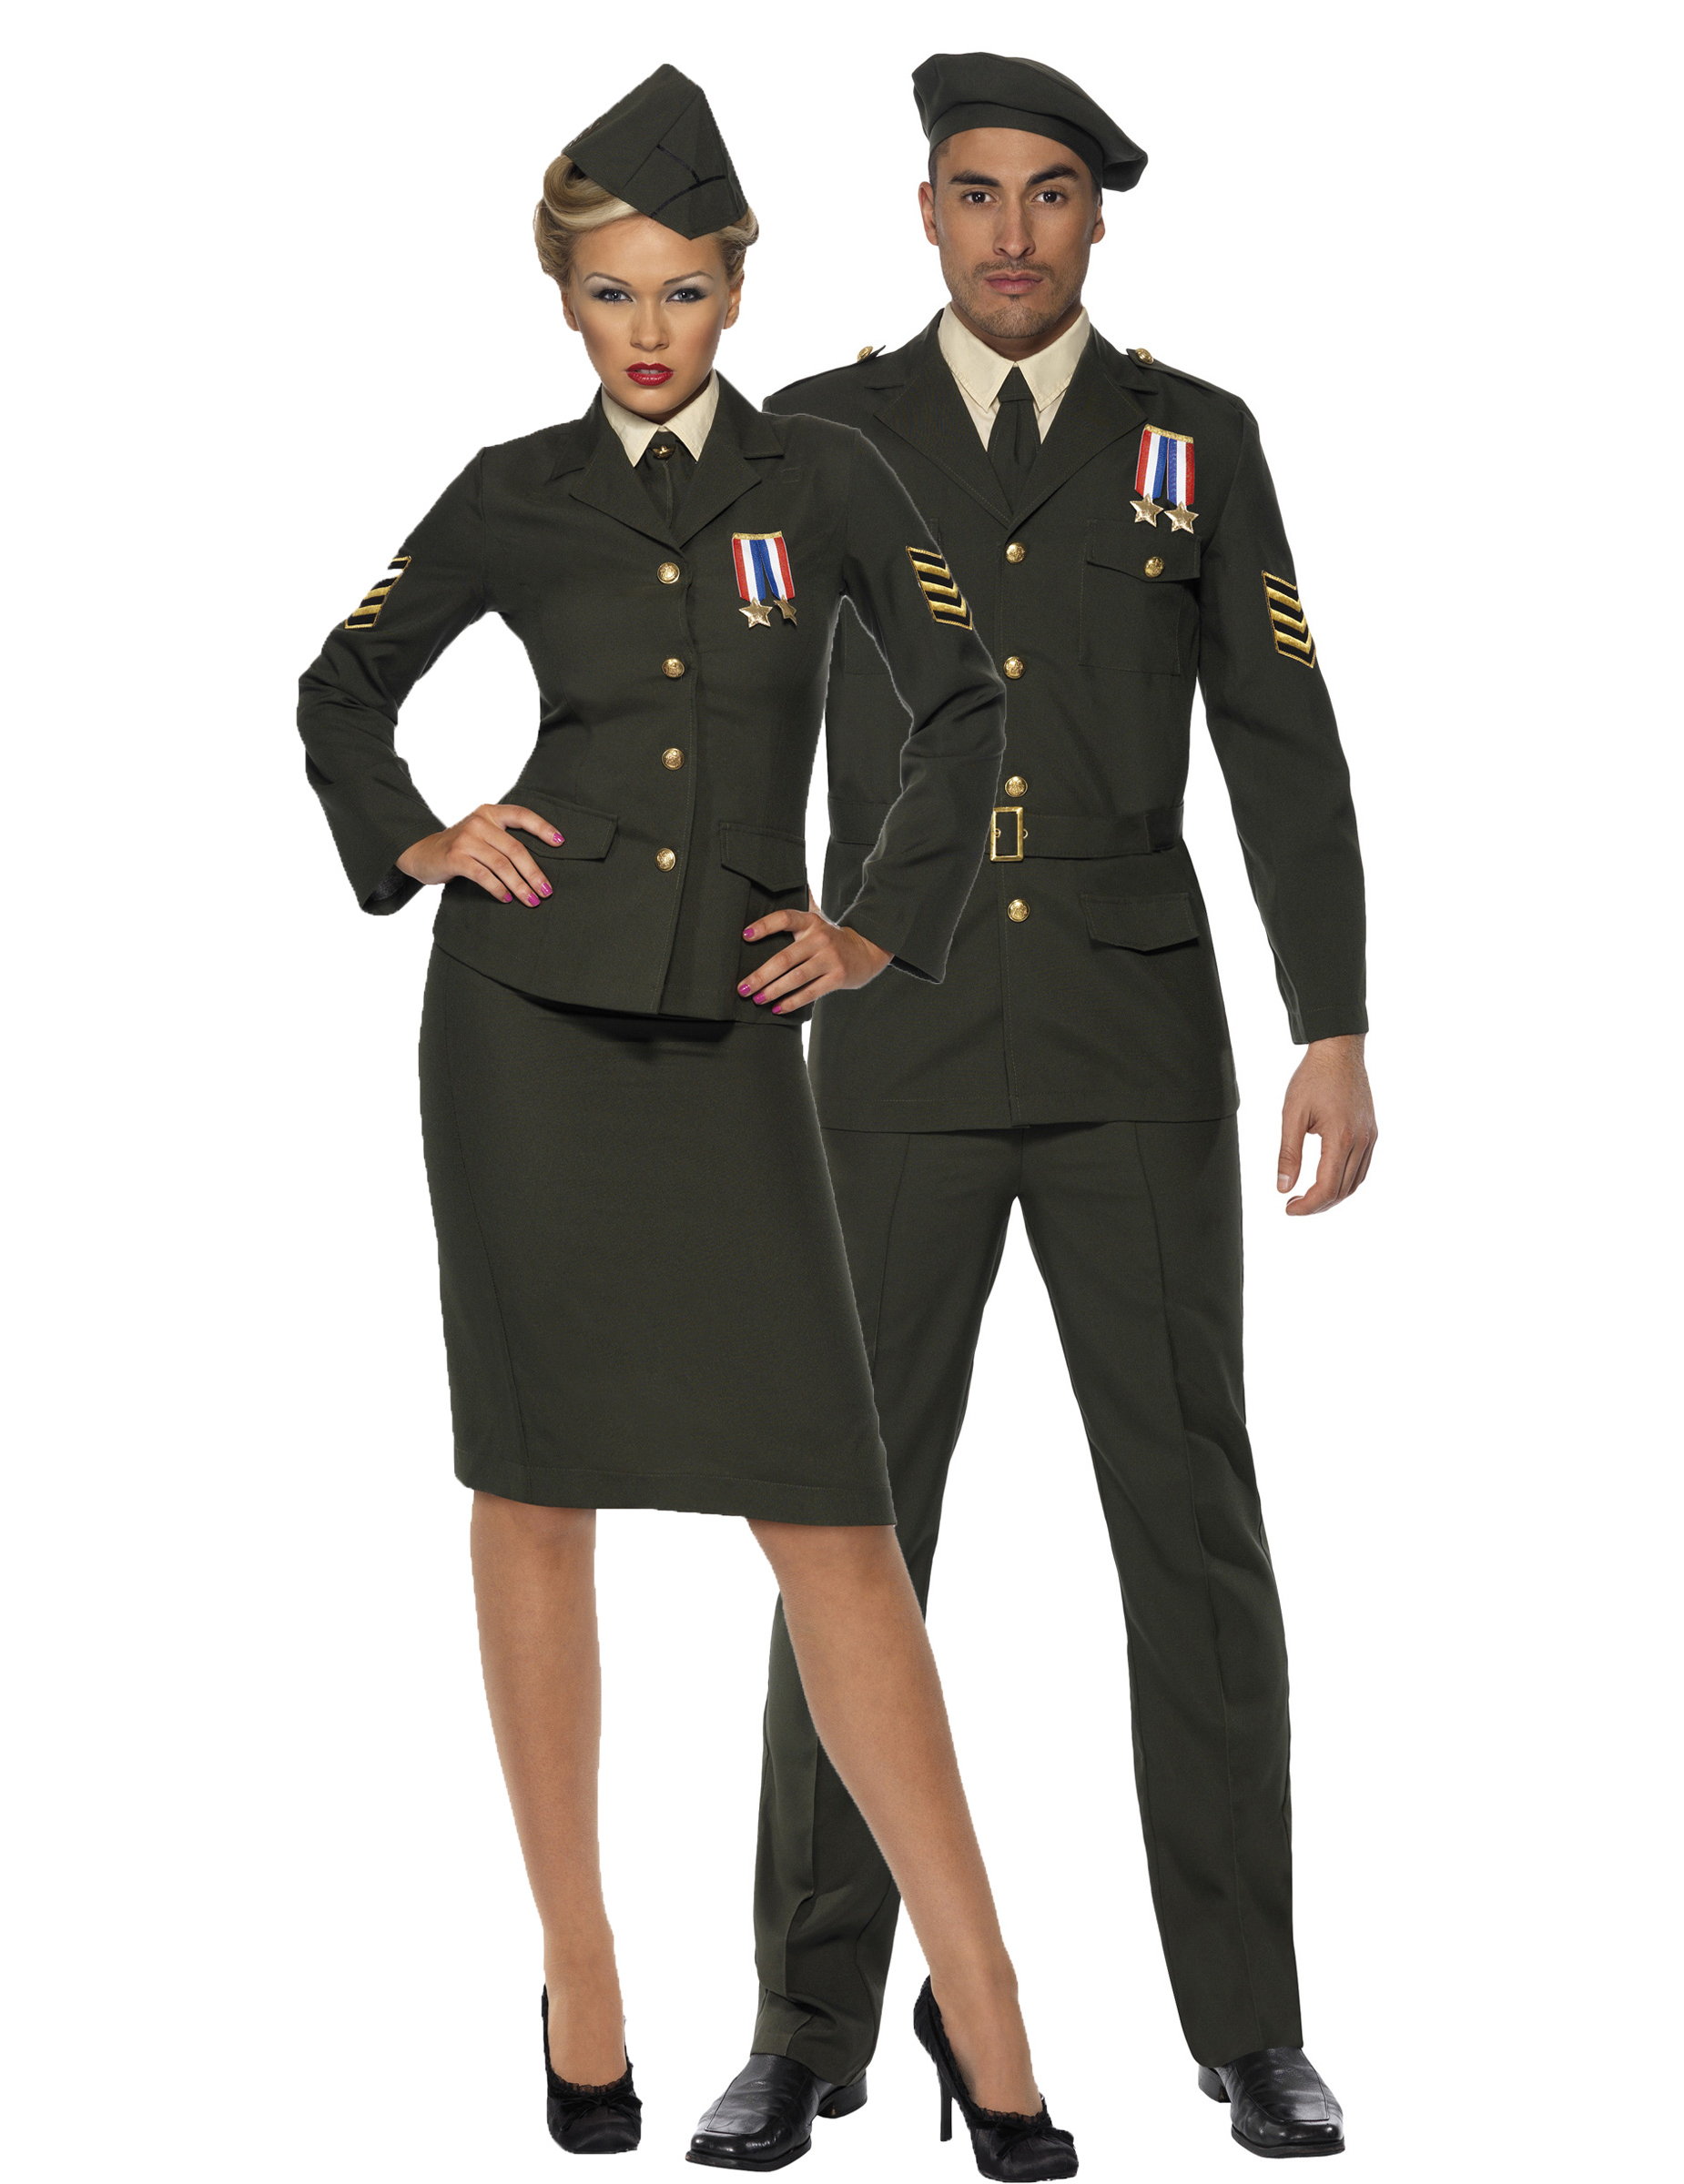 D guisement couple officiers militaires deguise toi achat de d guisements couples - Deguisement halloween couple ...